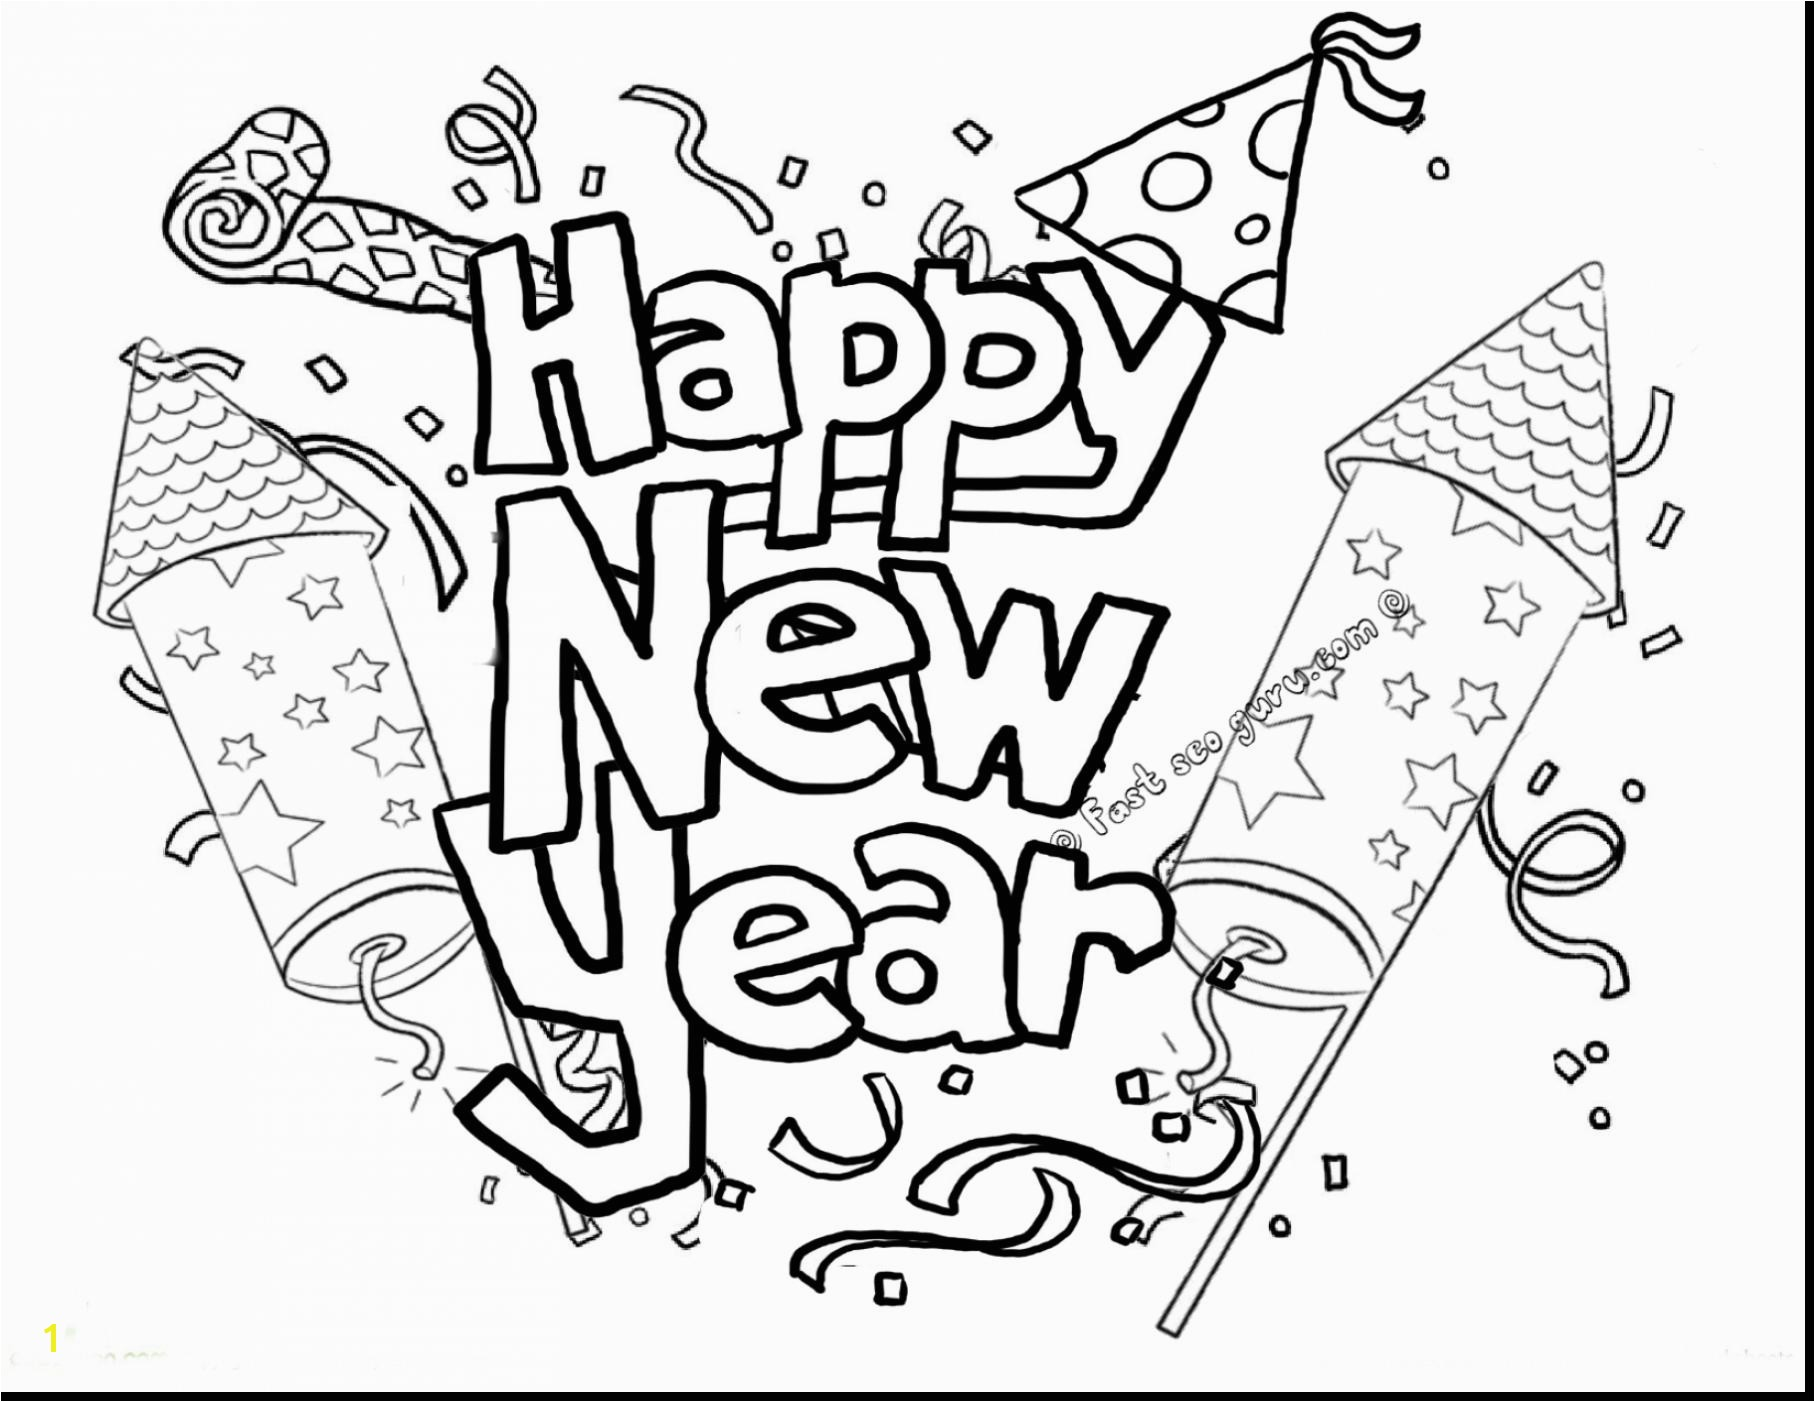 Secrets Happy New Year Coloring Pages To Print Direct 2017 Chin